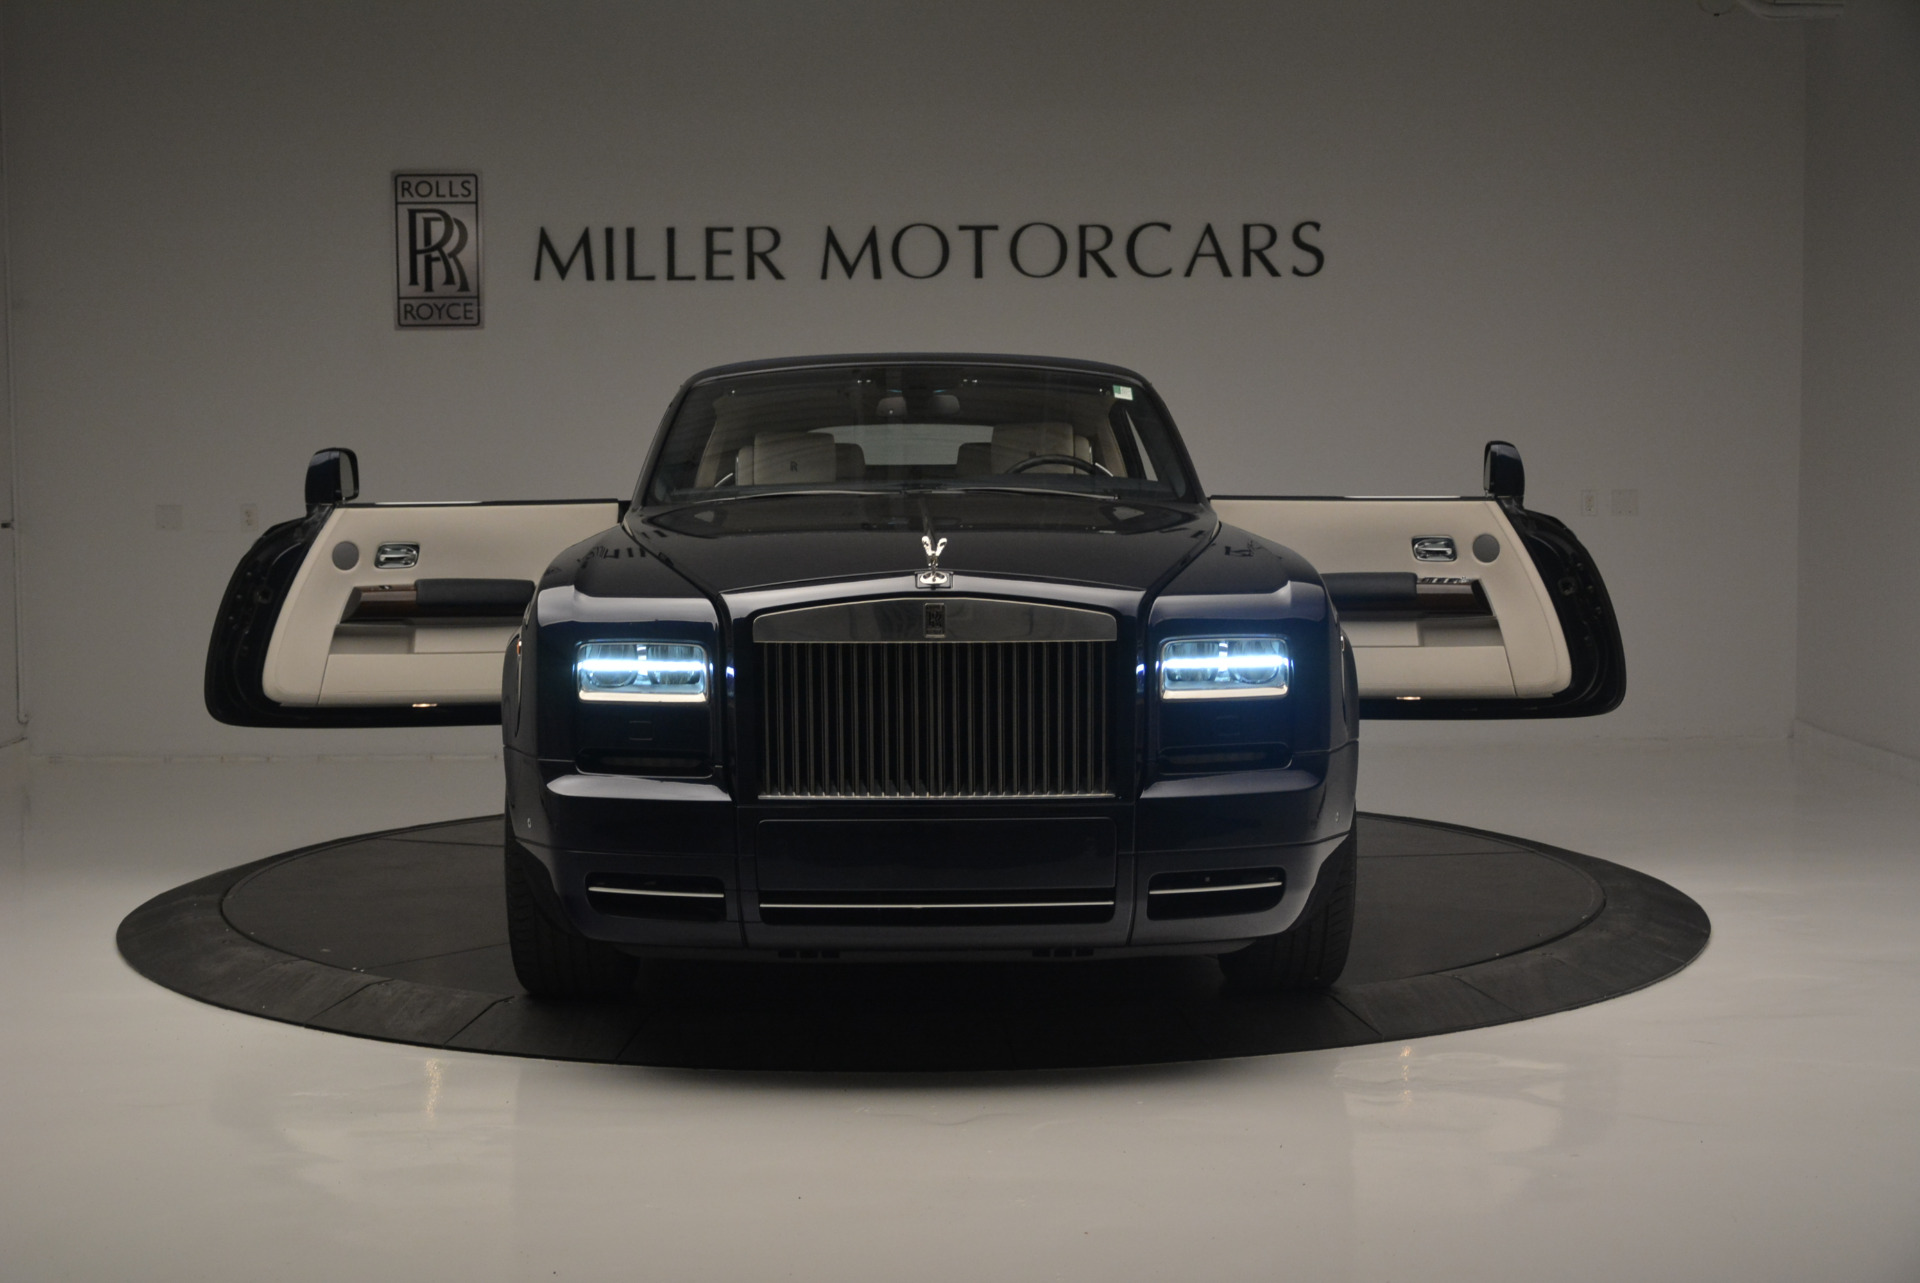 Used 2014 Rolls-Royce Phantom Drophead Coupe  For Sale In Westport, CT 2356_p17